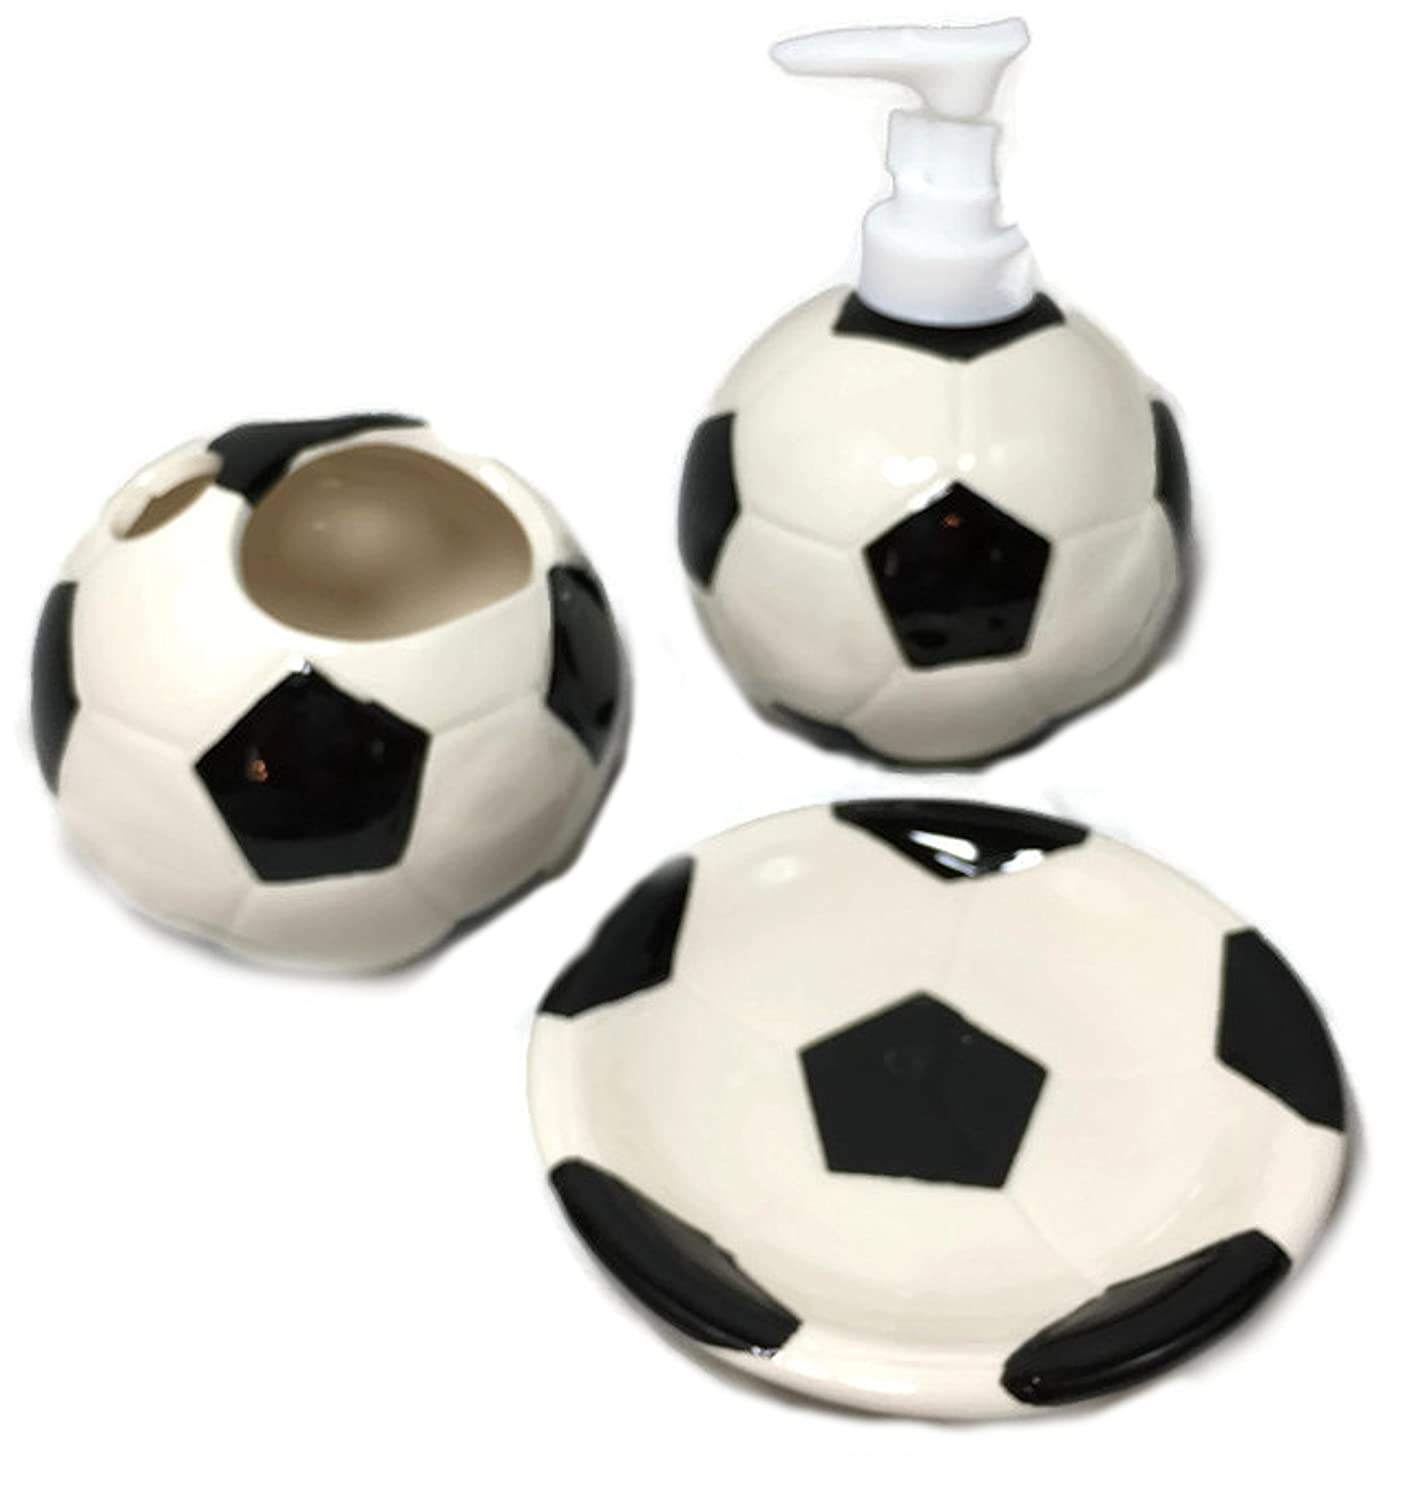 Stoneware bathroom accessories - Amazon Com Kids Sports Themed Bathroom Accessories Lotion Soap Dispenser Soap Dish Toothbrush Holder Soccer Home Kitchen